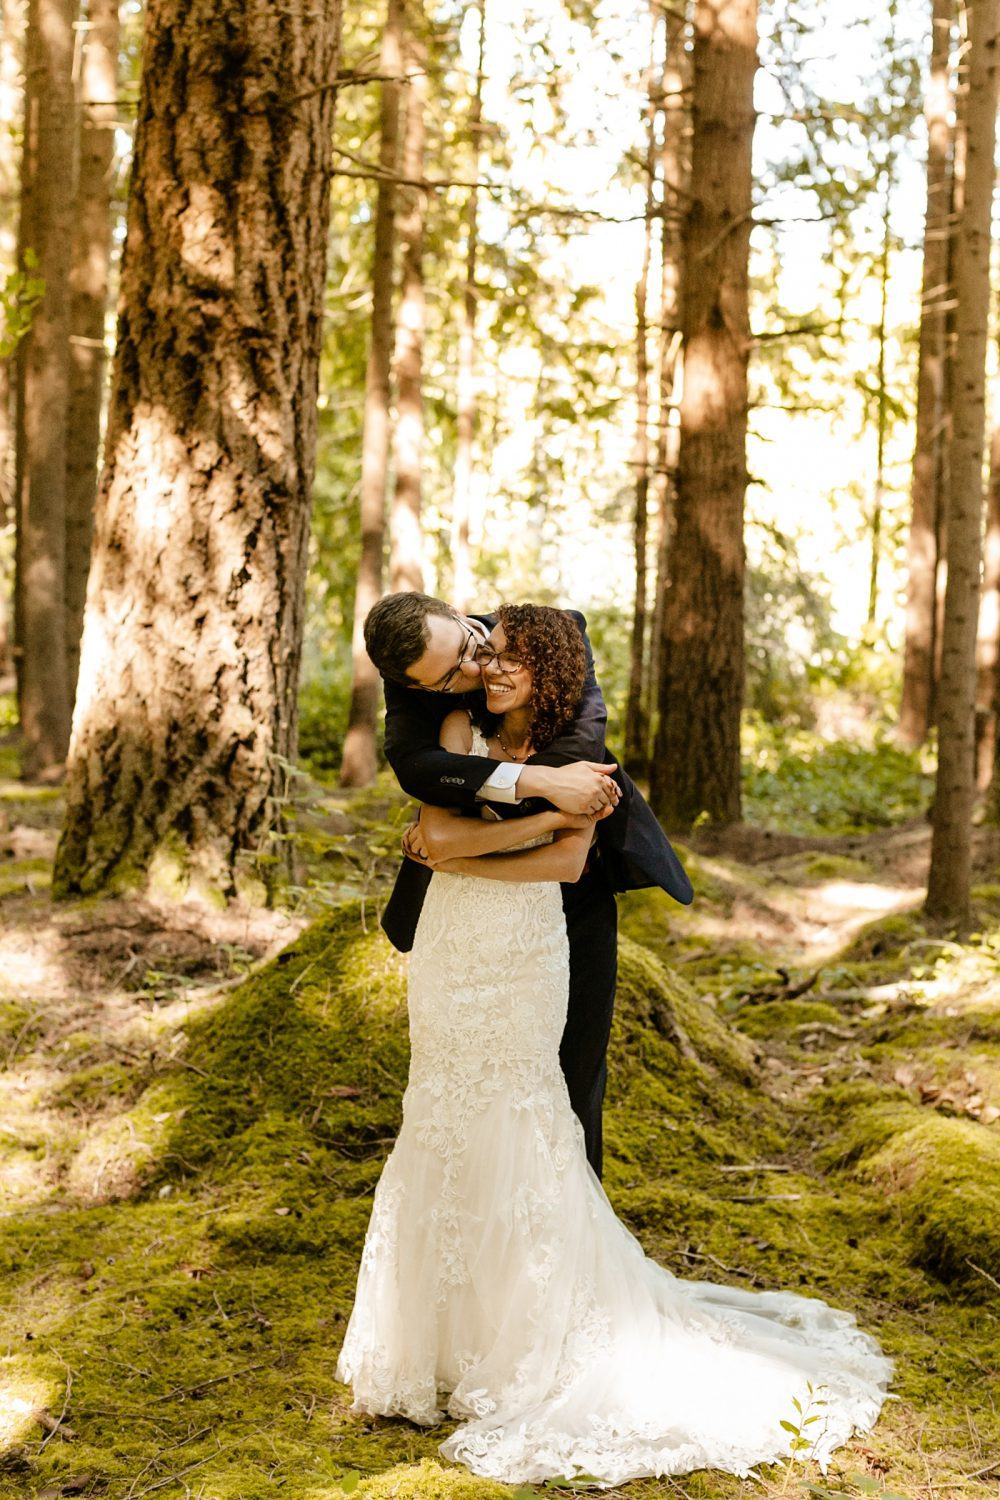 best wedding photographer in seattle washington, emerald forest elopement venue, How To Choose The Best Wedding Vendors, groom hugging bride from behind in the middle of the sun kissed forest